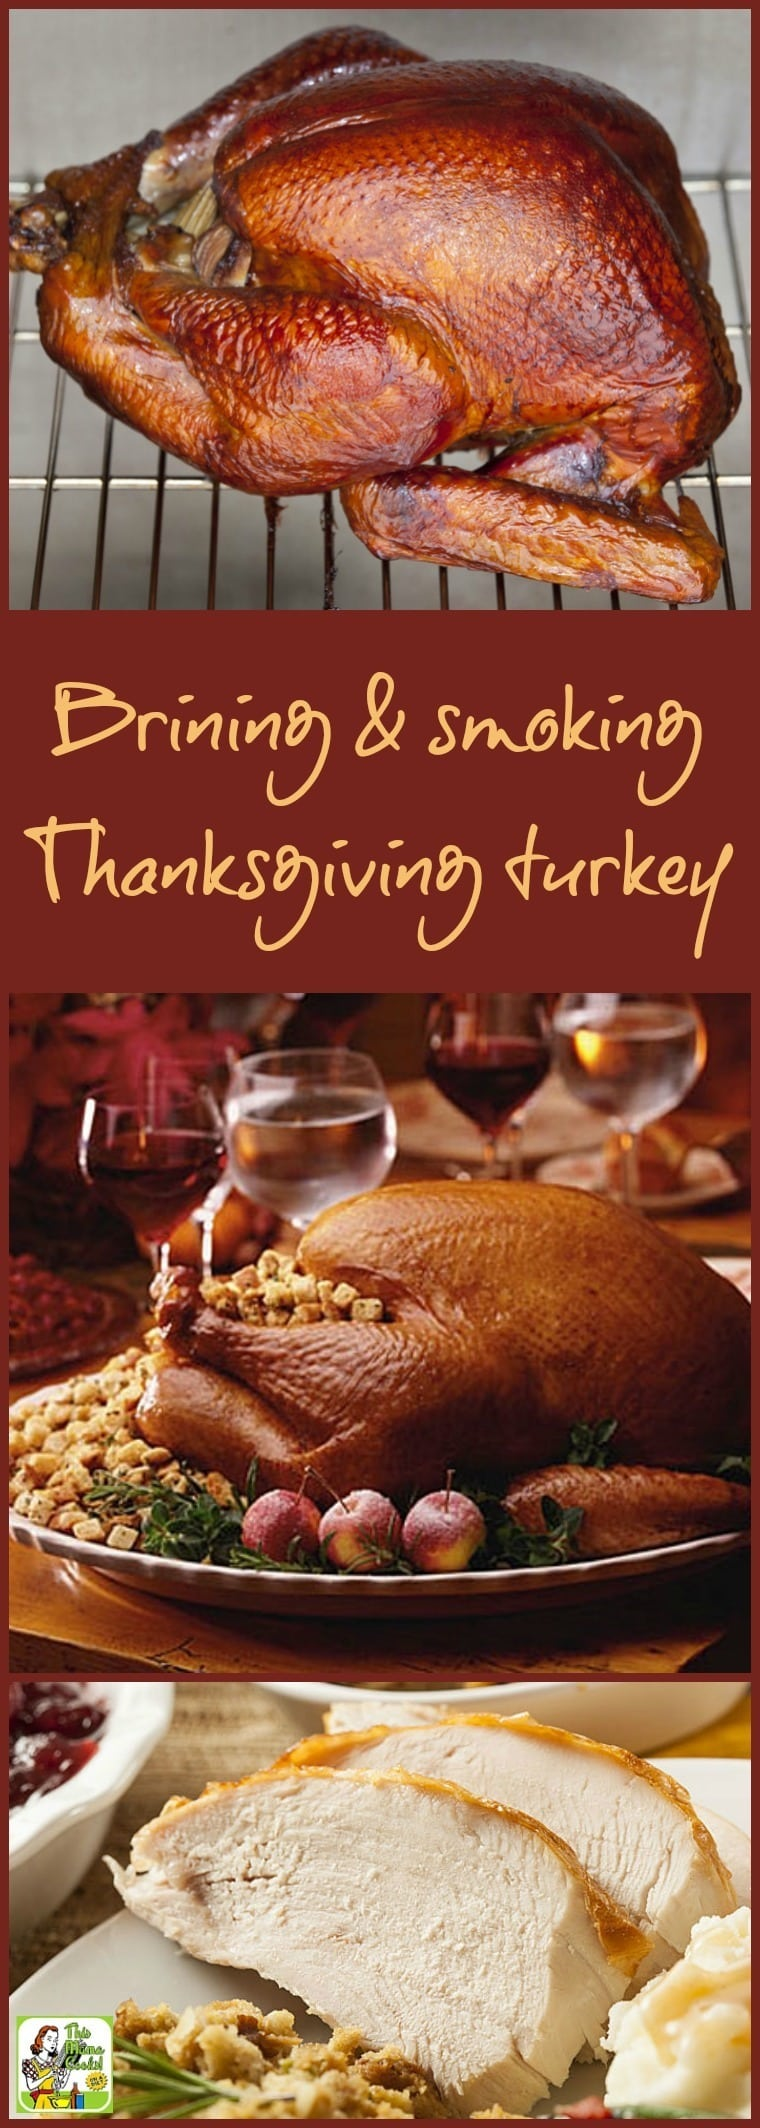 Want to learn an easy way how to brine and smoke your Thanksgiving turkey?  Click to get the easy brining and smoking recipe for Smoked Turkey with Maple-Herb Brine. It's gluten free and delicious!